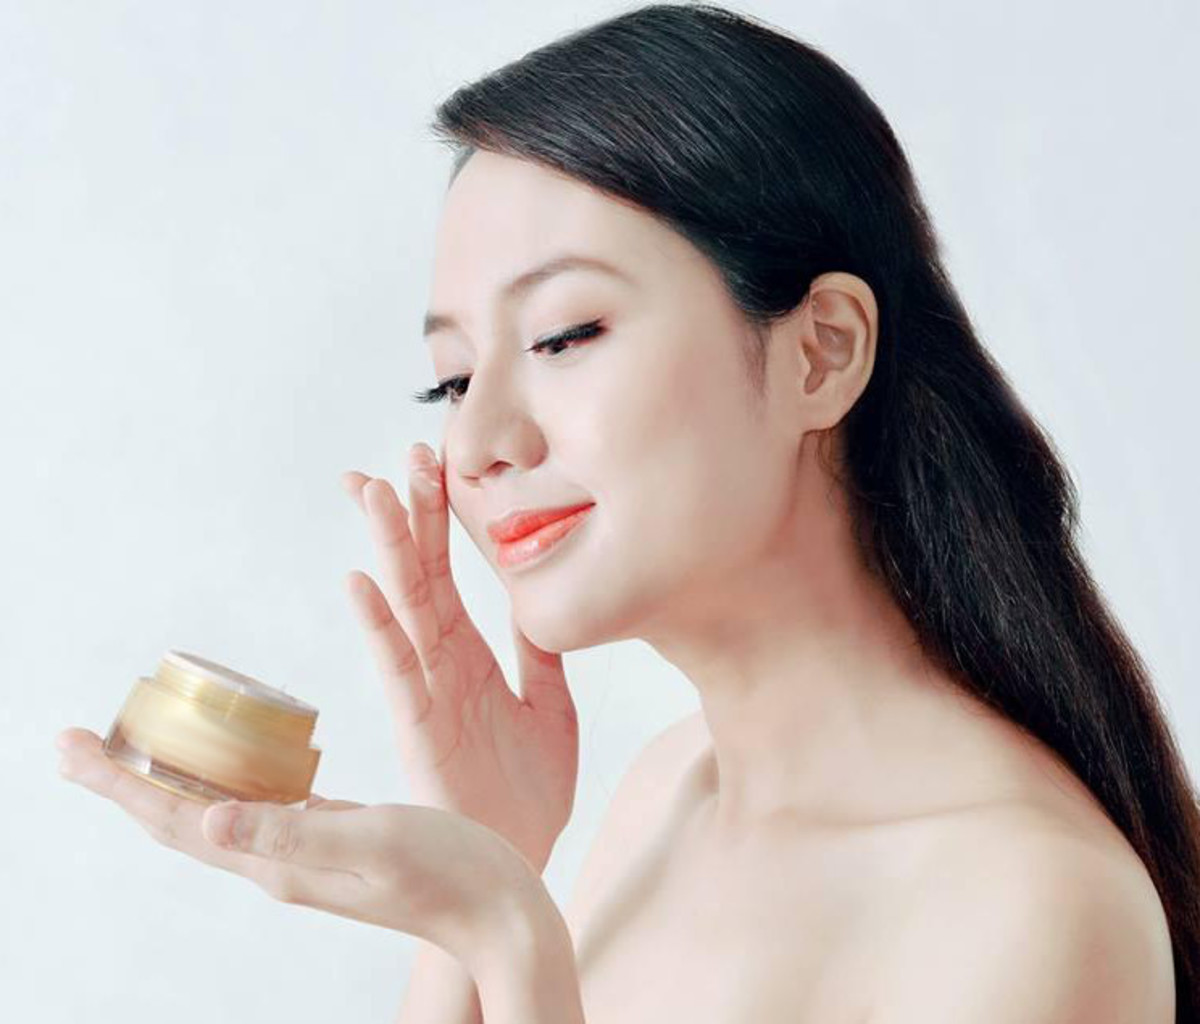 Creams and serums to treat broken capillaries contain secondary plant substances extracted from crowfoot and celandine.